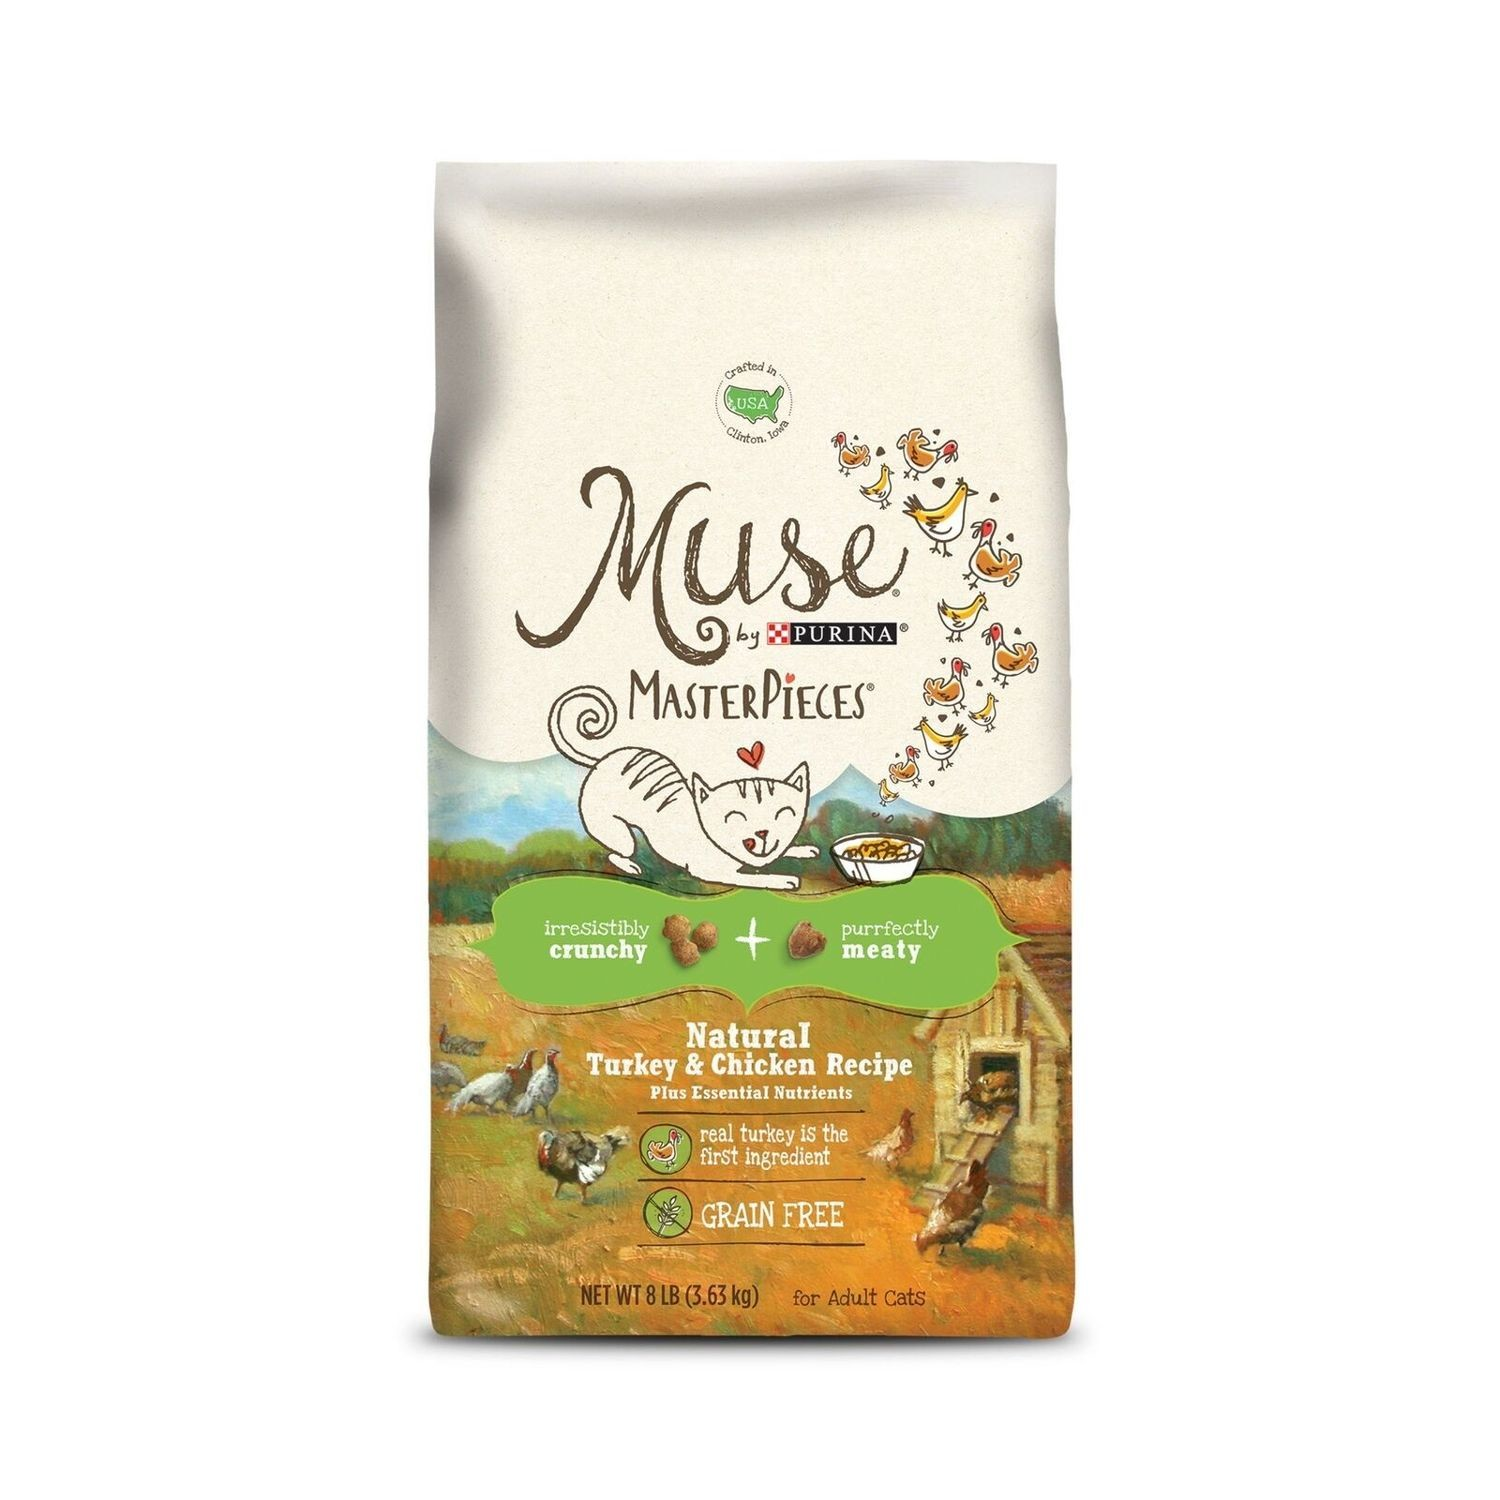 Muse Natural Grain Free Adult Dry Cat Food Dry Food With Meaty Masterpieces w/Turkey & Chicken 8 lbs. (6/19) (A.K5)